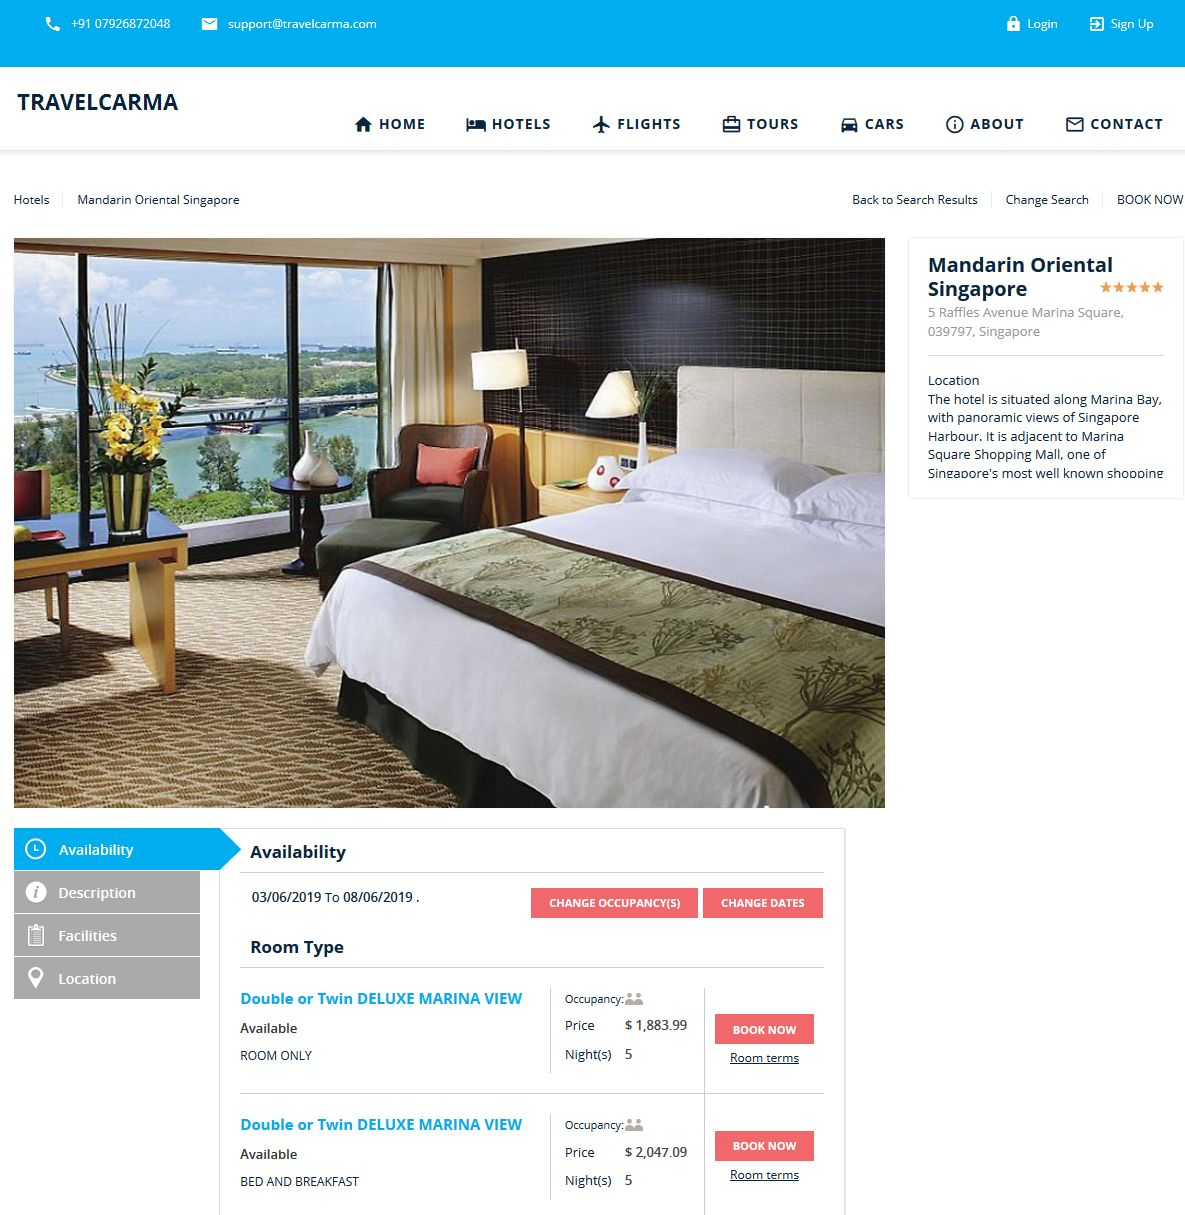 Hotel Details with real-time room rates and availability - Theme 2